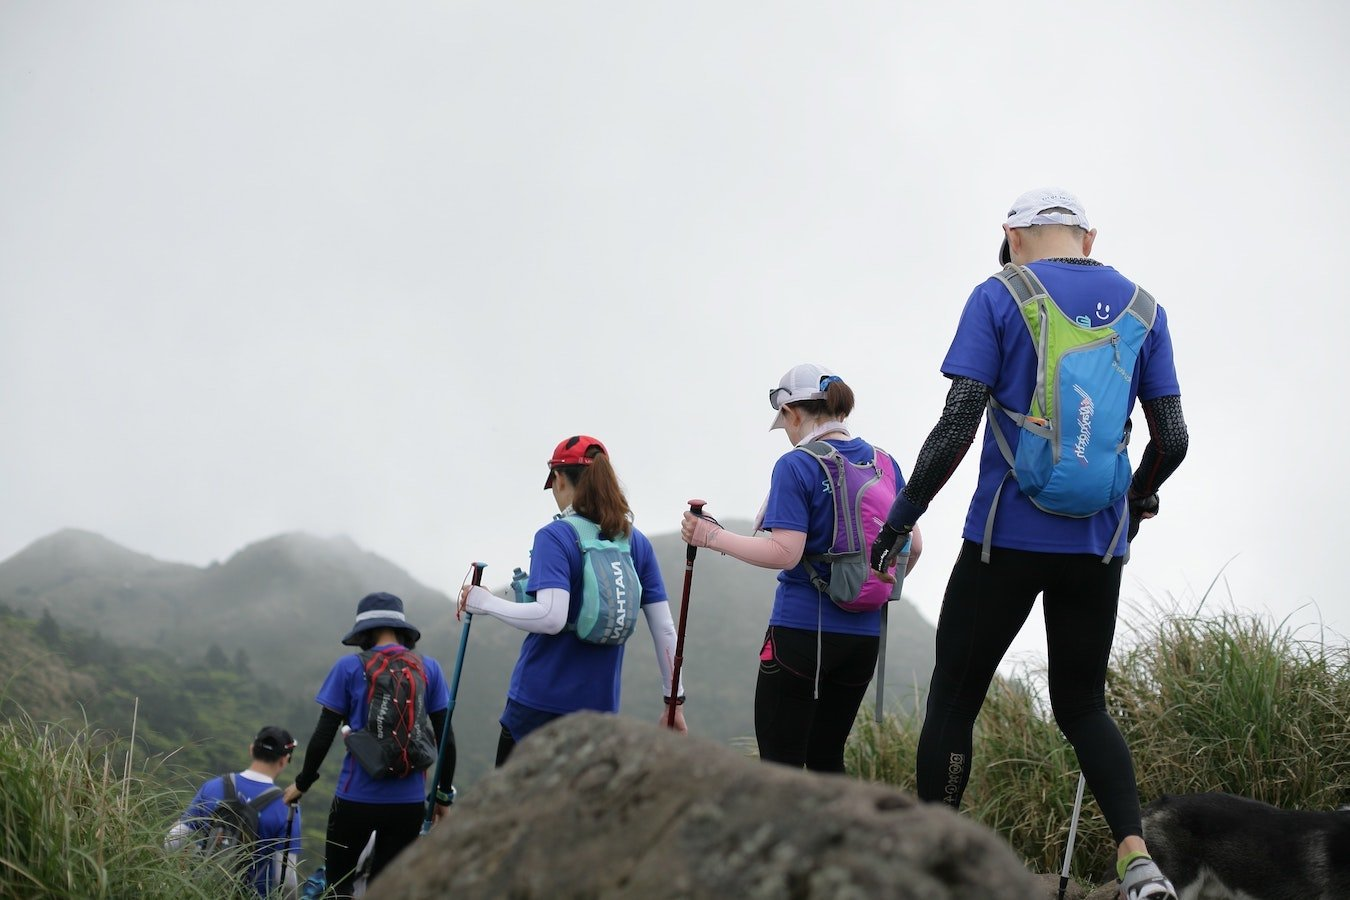 Young people hiking outdoors